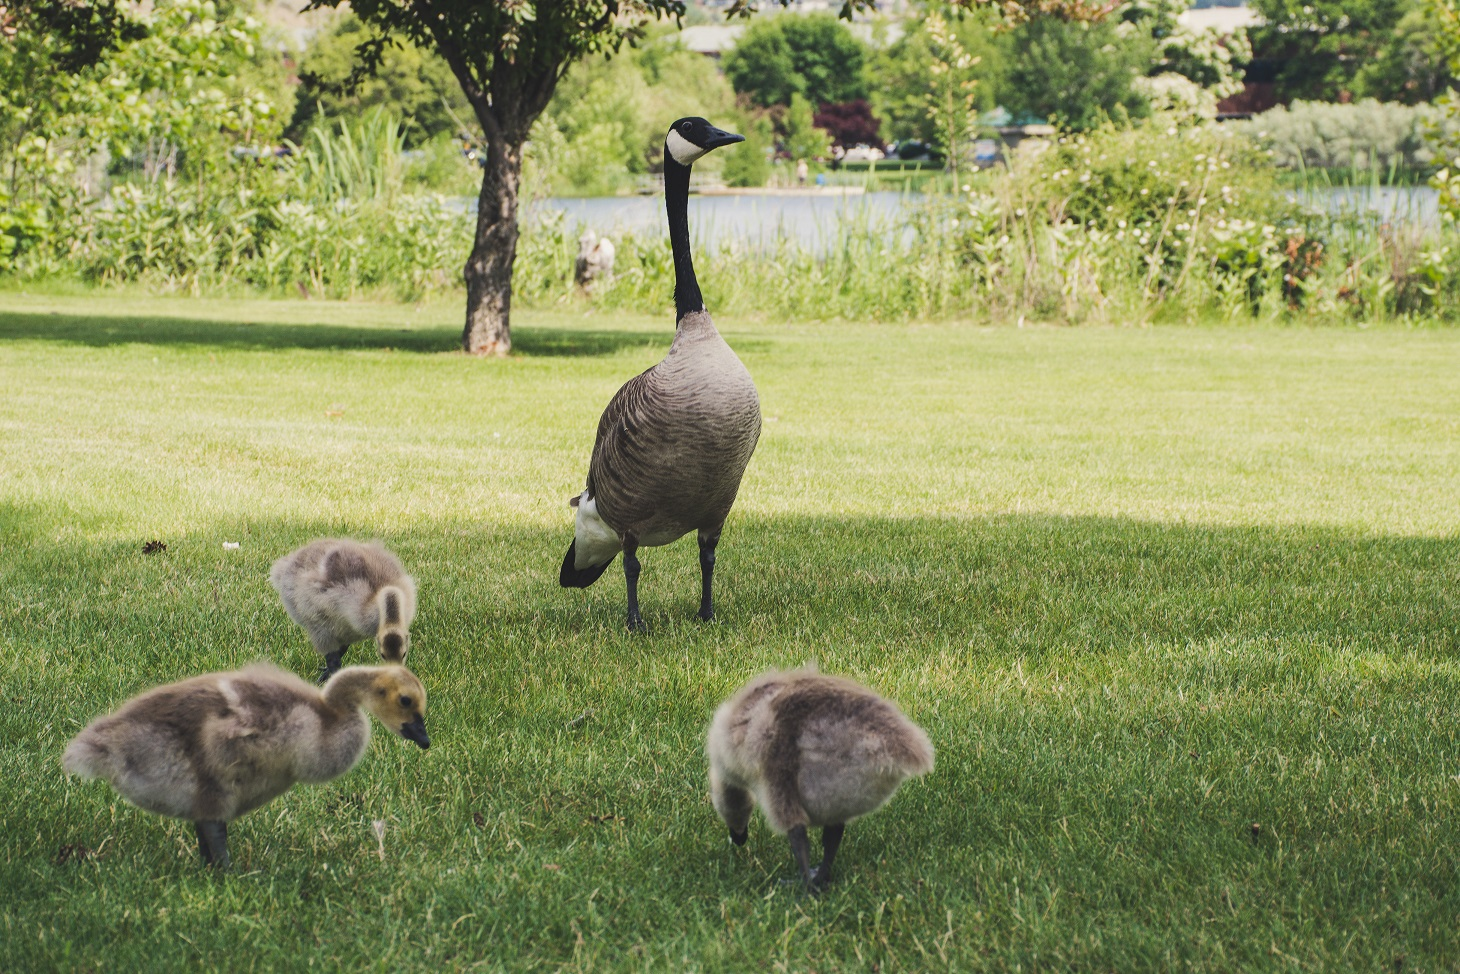 Mother Canadian Goose with goslings in Canada